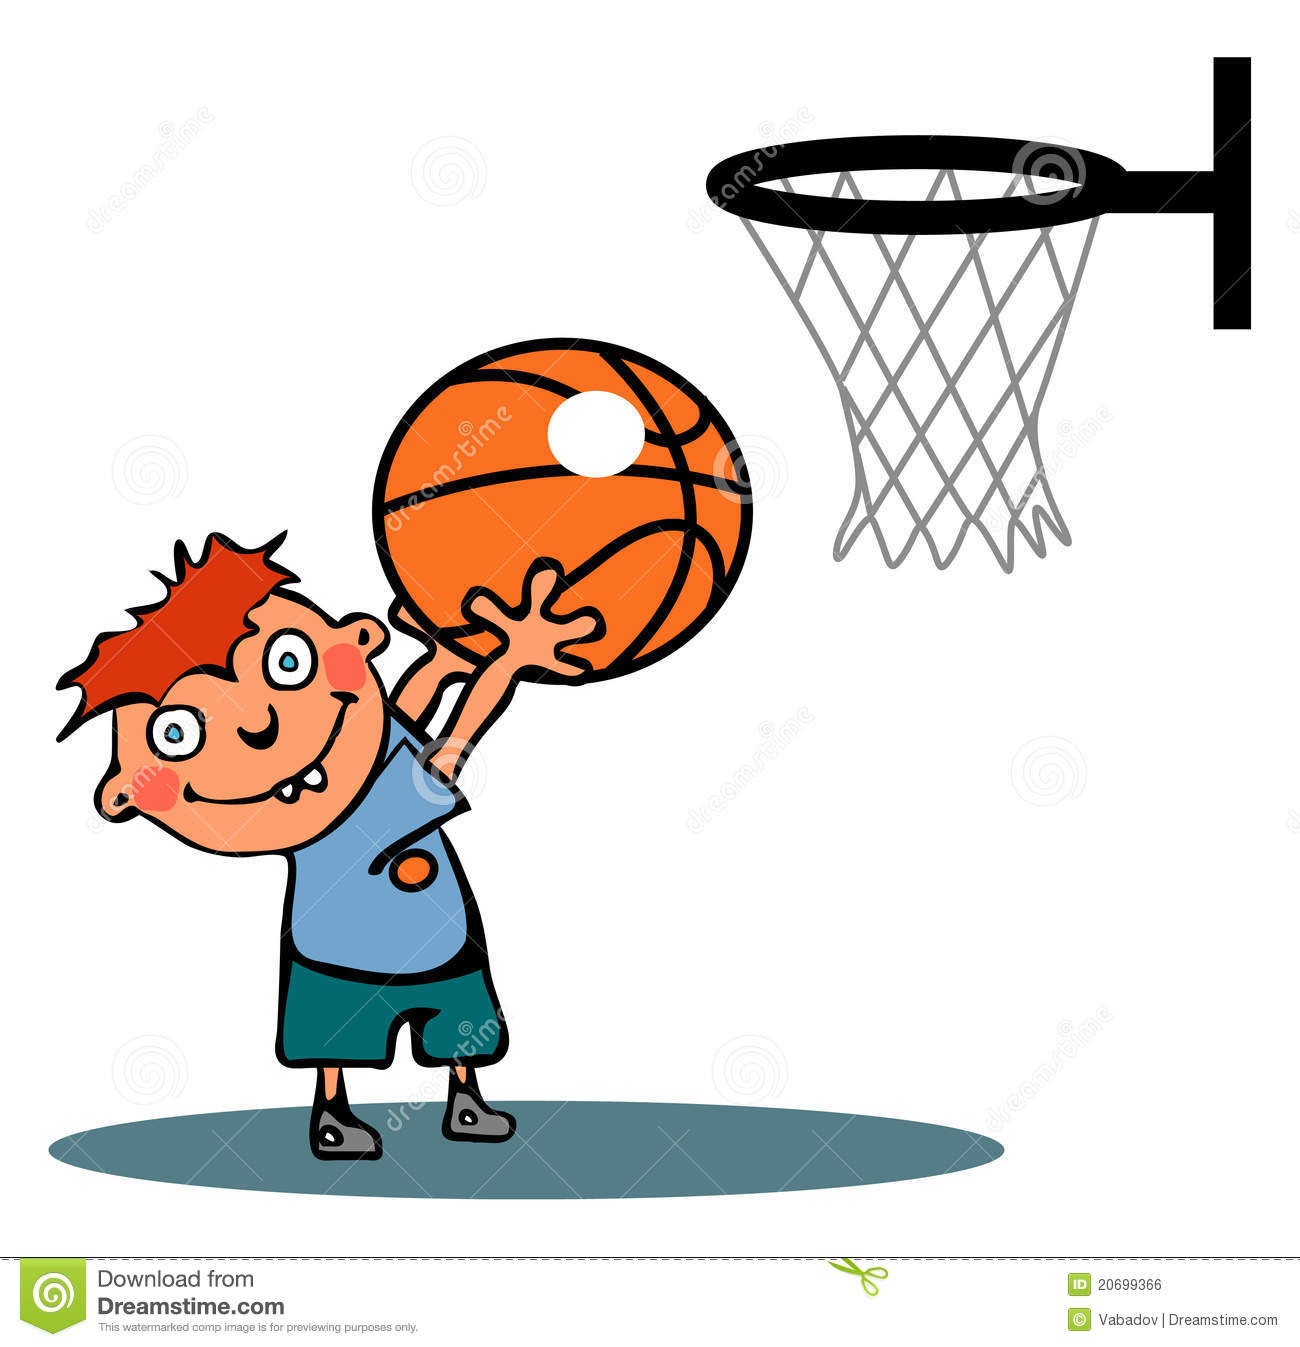 Funny Basketball Boy Royalty Free Stock Image - Image: 20699366